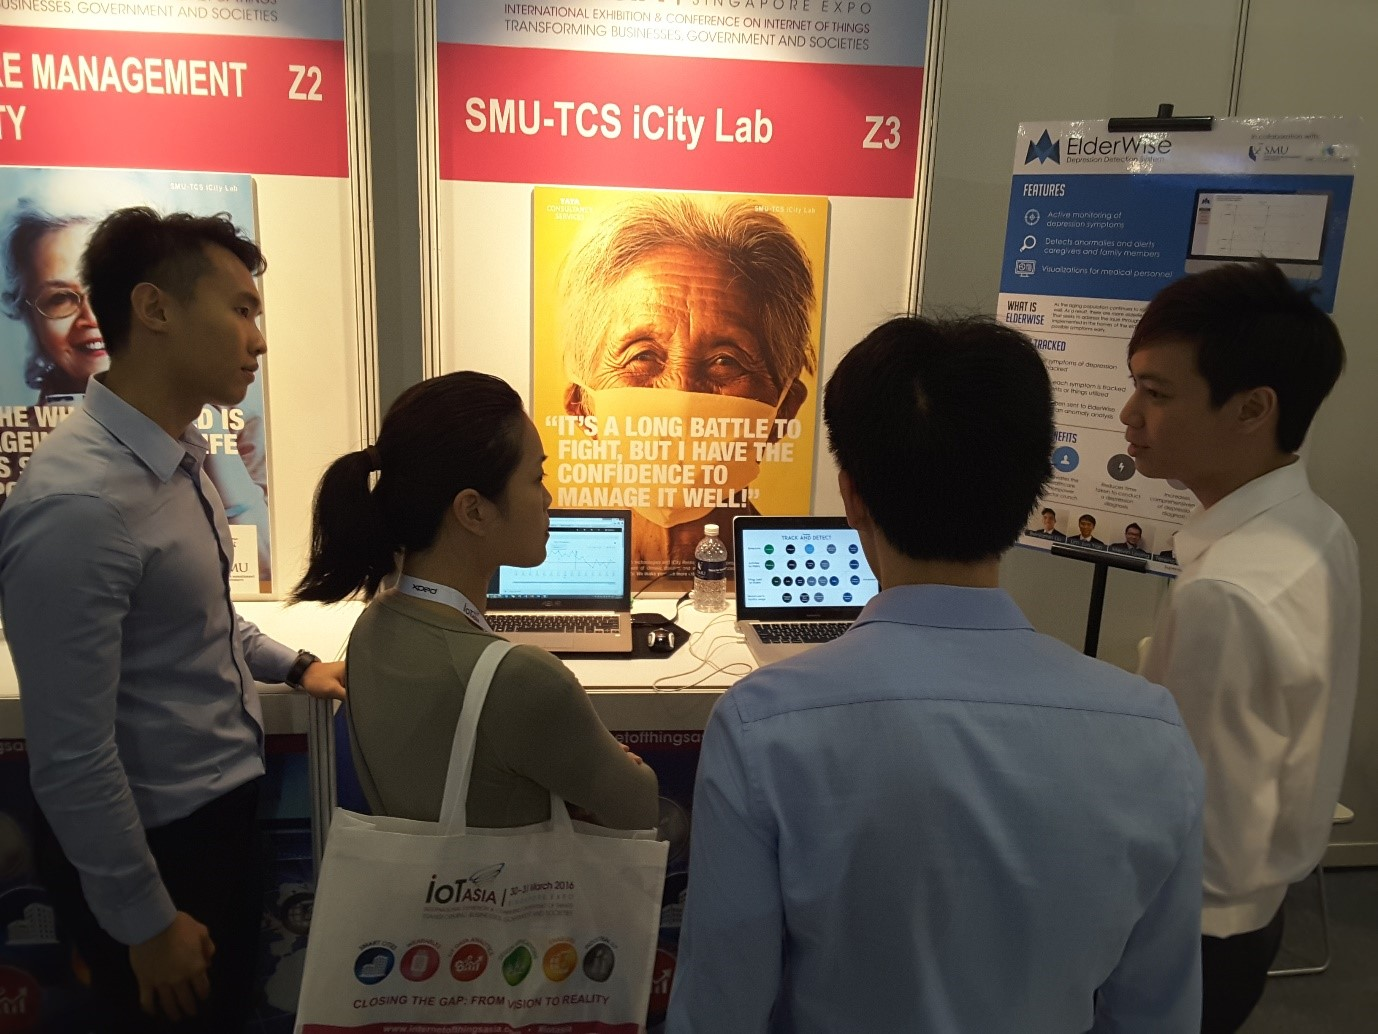 SMU-TCS iCity Lab will focus on developing intelligent infrastructure, software and applications in Singapore.